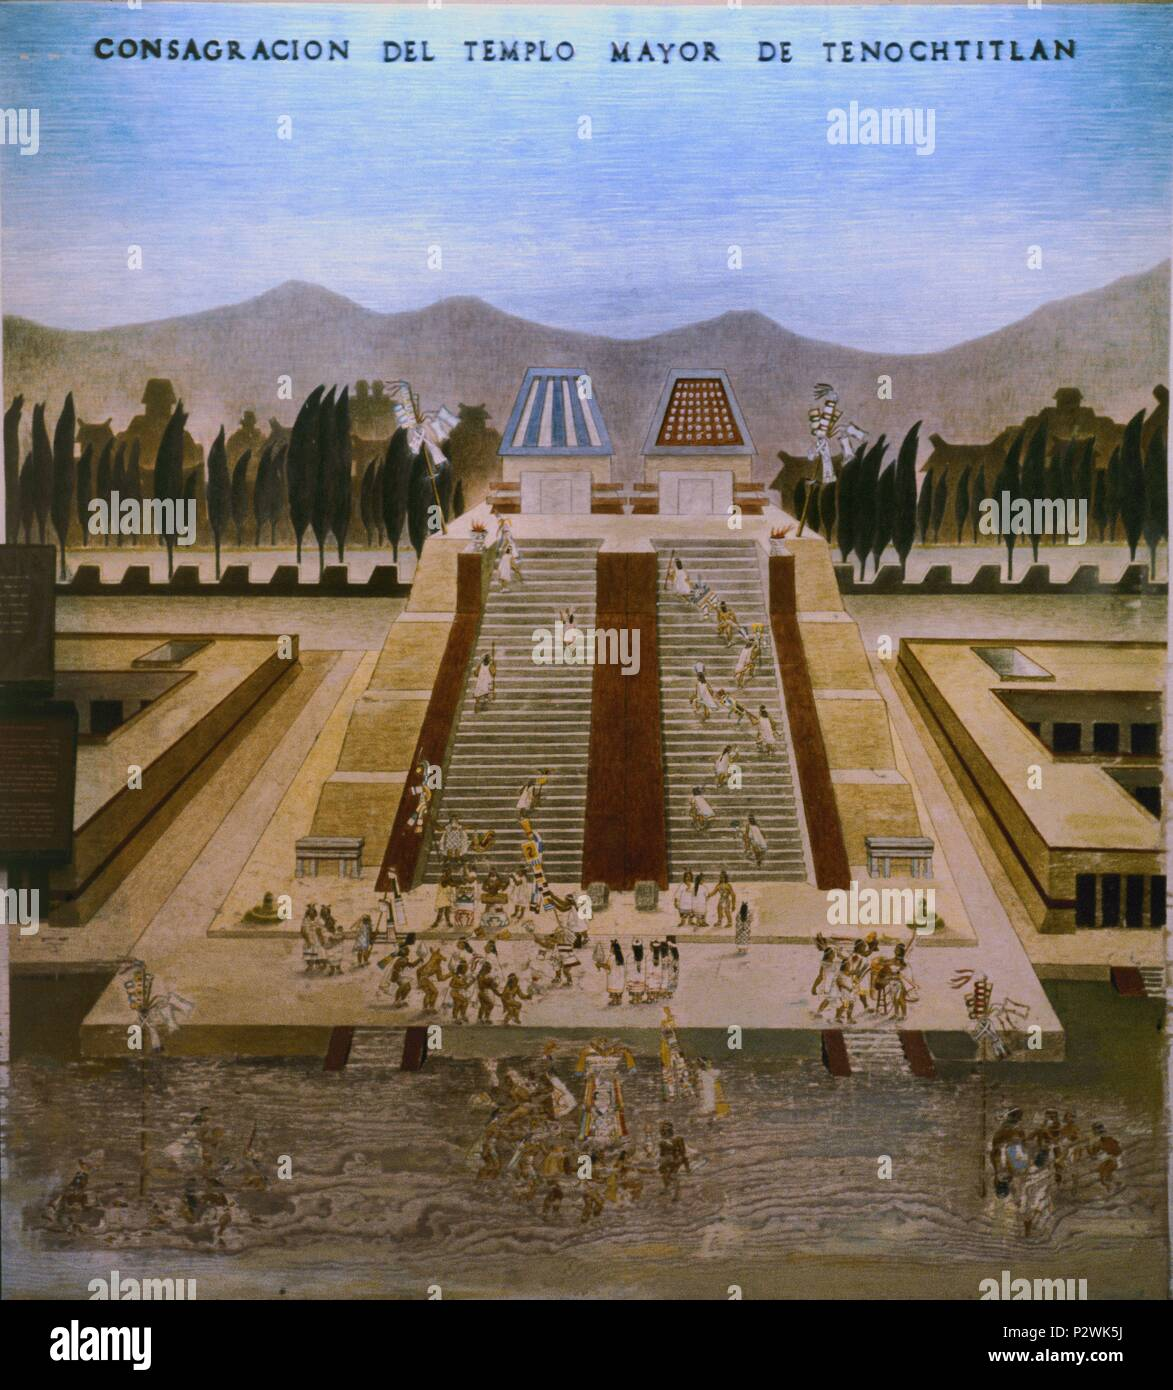 Drawing. Consecration of Tenochtitlan Great Temple. Mexico City, Museum of the City. Location: CITY MUSEUM, MEXICO CITY. Stock Photo